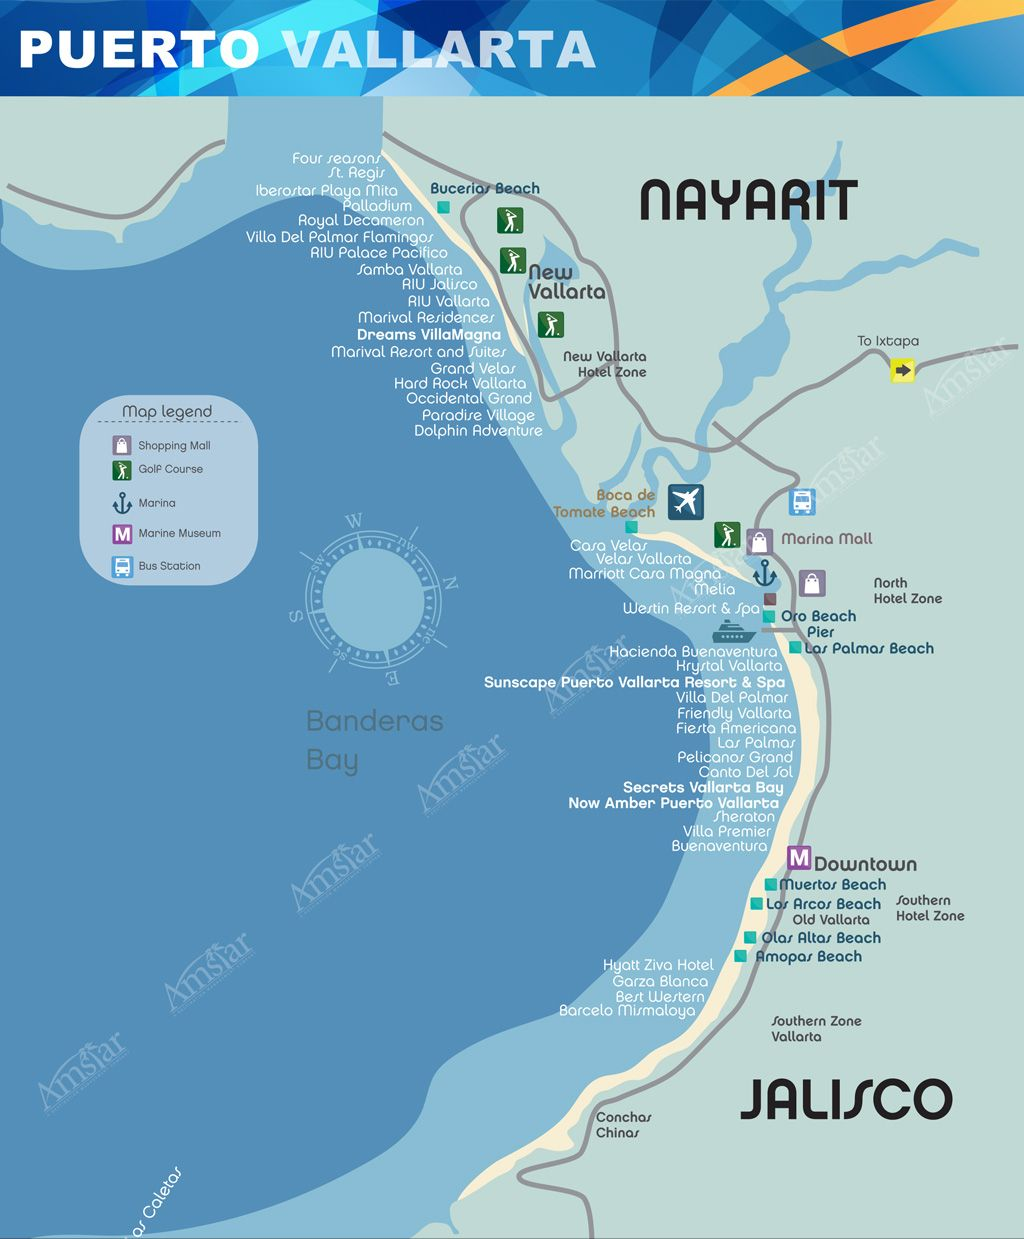 Puerto Vallarta Map Puerto VallartaTevs wedding Pinterest